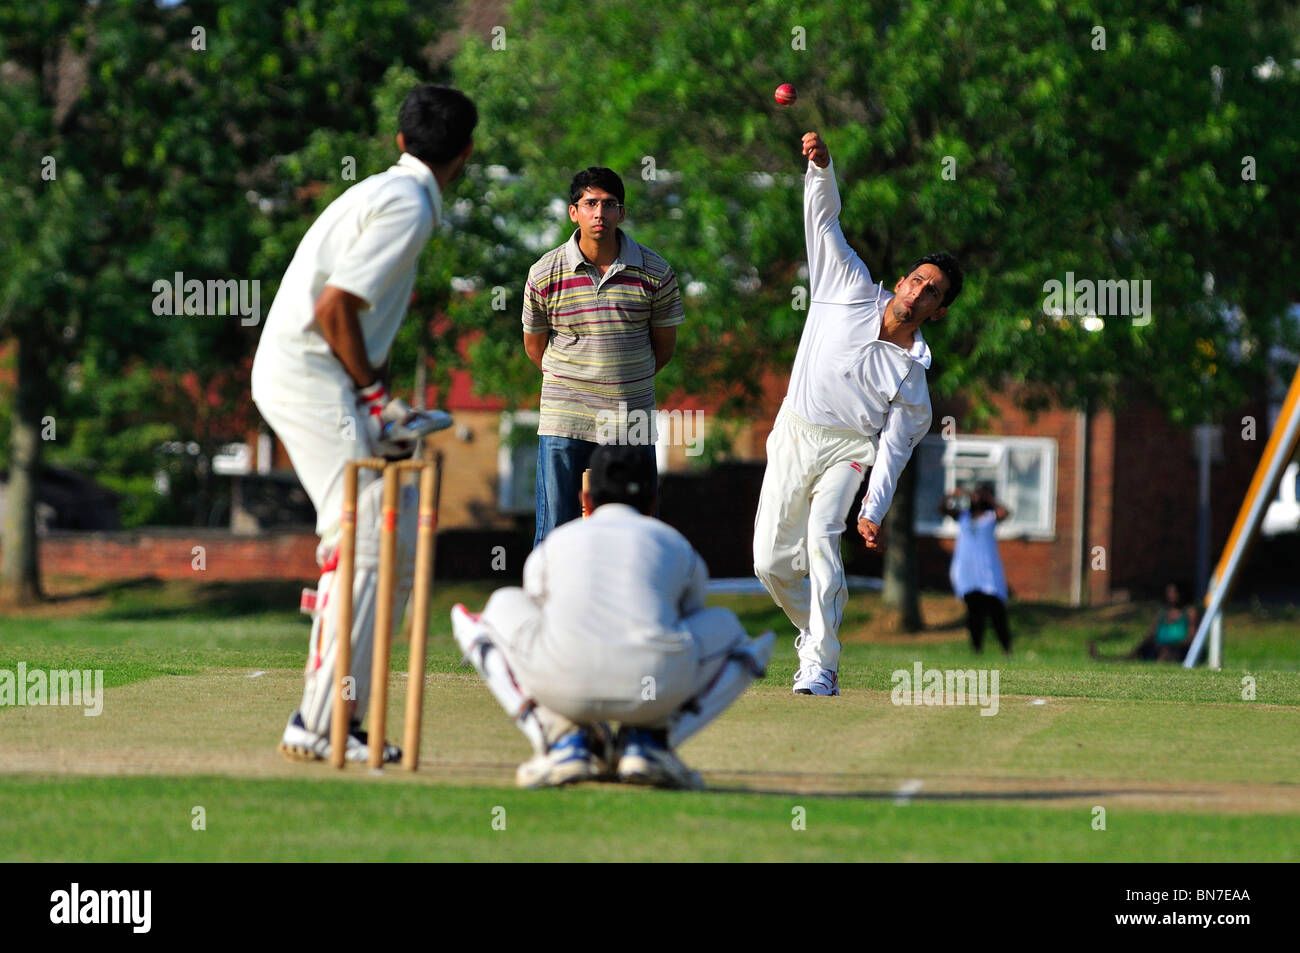 Cricket Match in Luton - Stock Image